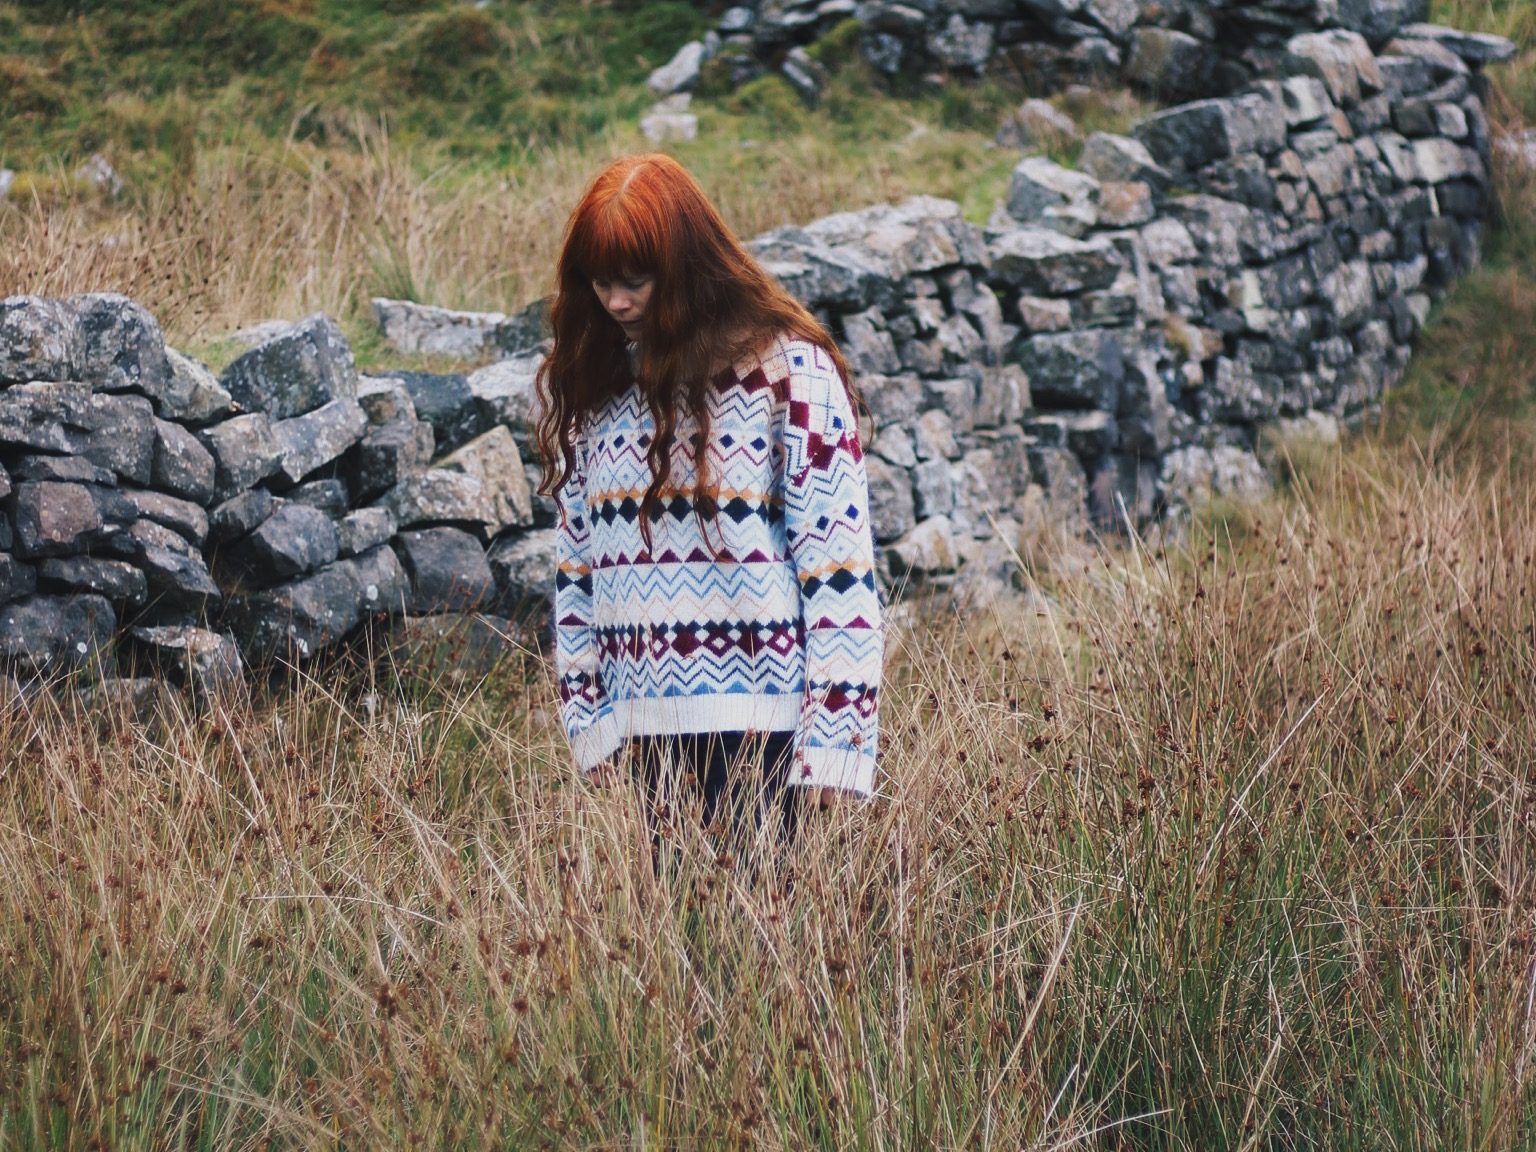 Girl with red hair, countryside